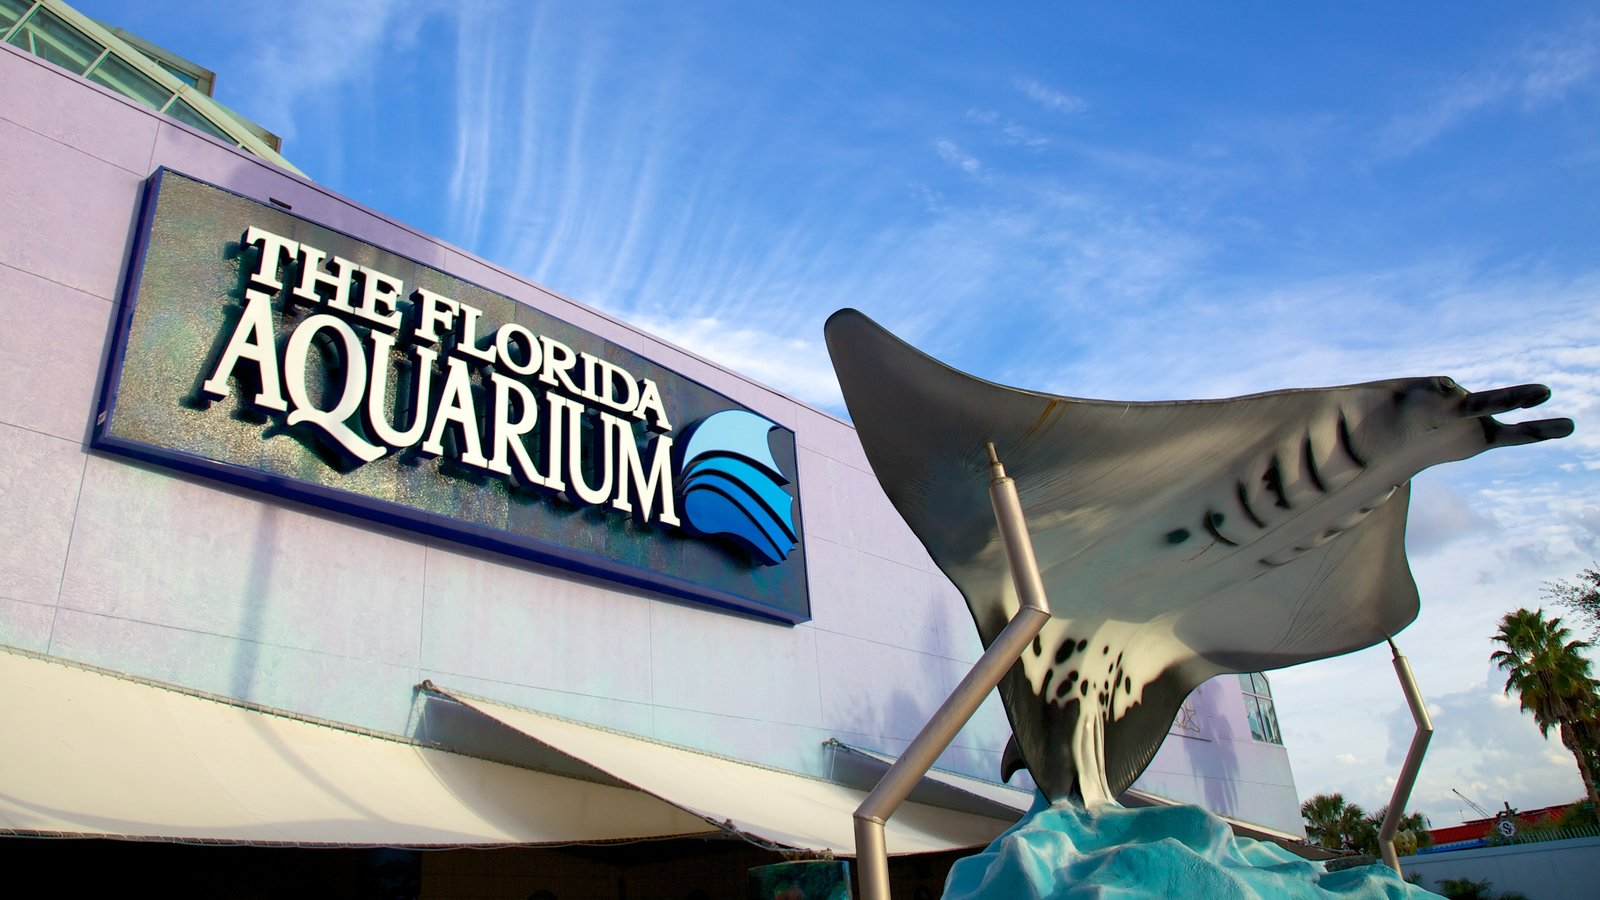 Florida Aquarium showing marine life, signage and modern architecture